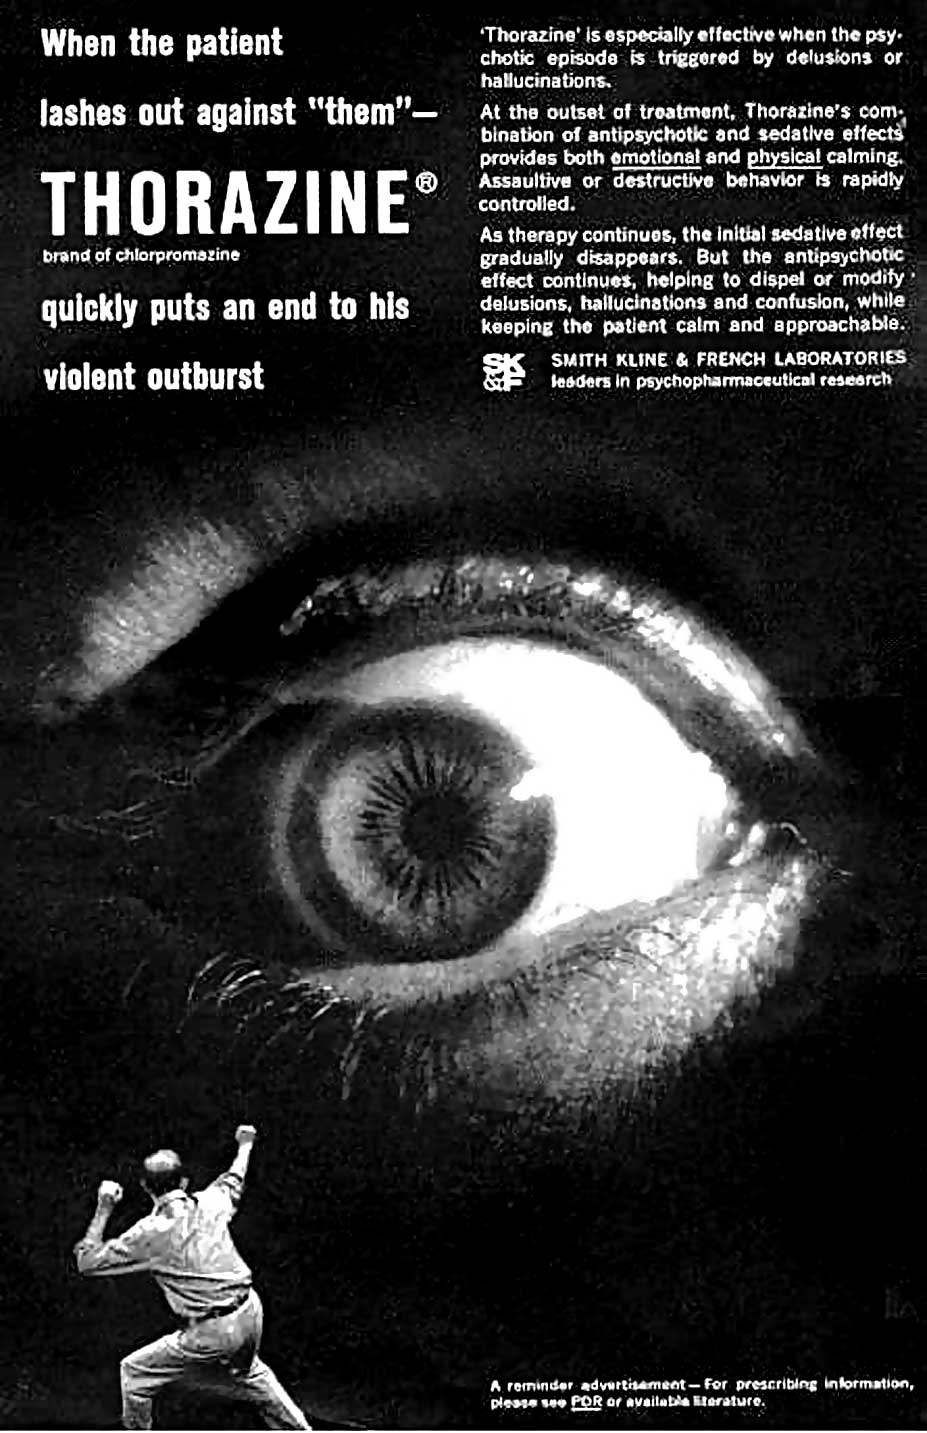 Thorazine_advert